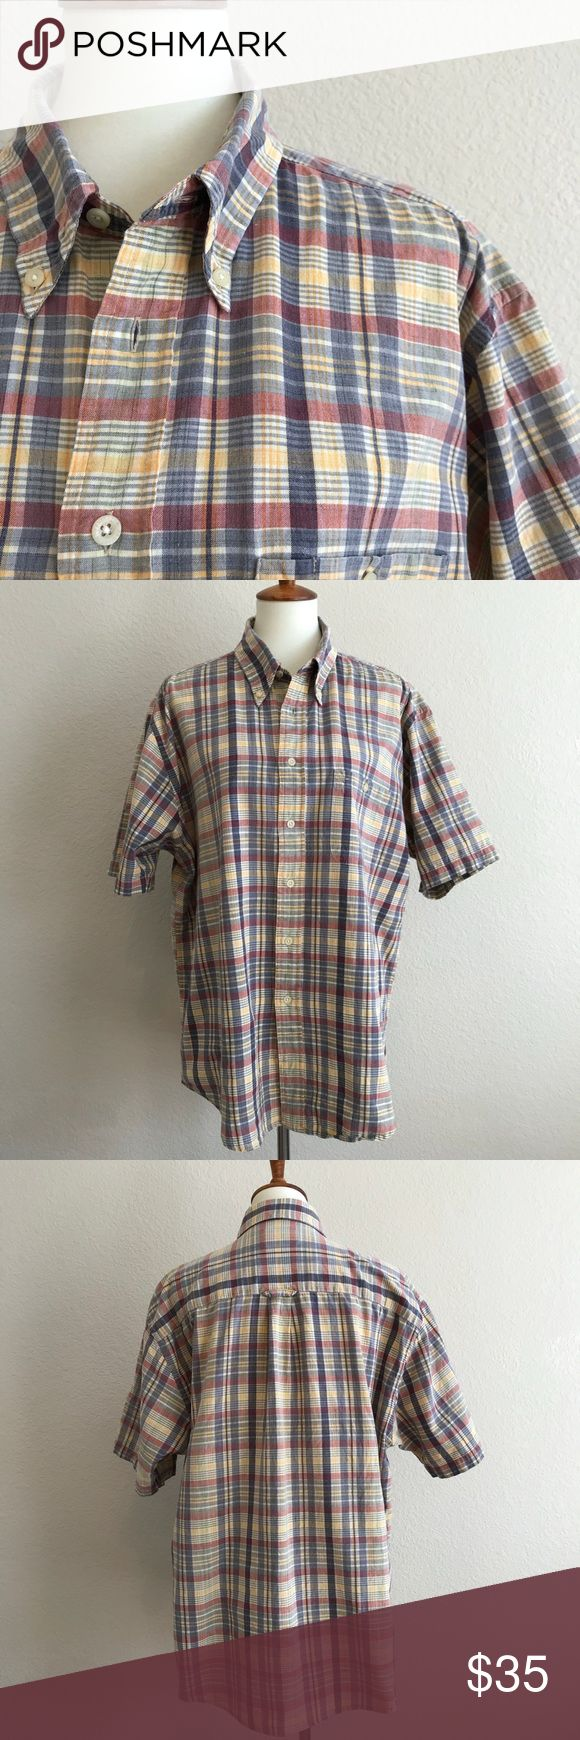 Pendleton Shirt Vintage look Pendleton shirt with front button. Extra buttons attached. Excellent preowned condition.  Sleeves are 10 inches. PTP is 25 inches. Length is 32 inches. Pendleton Shirts Casual Button Down Shirts